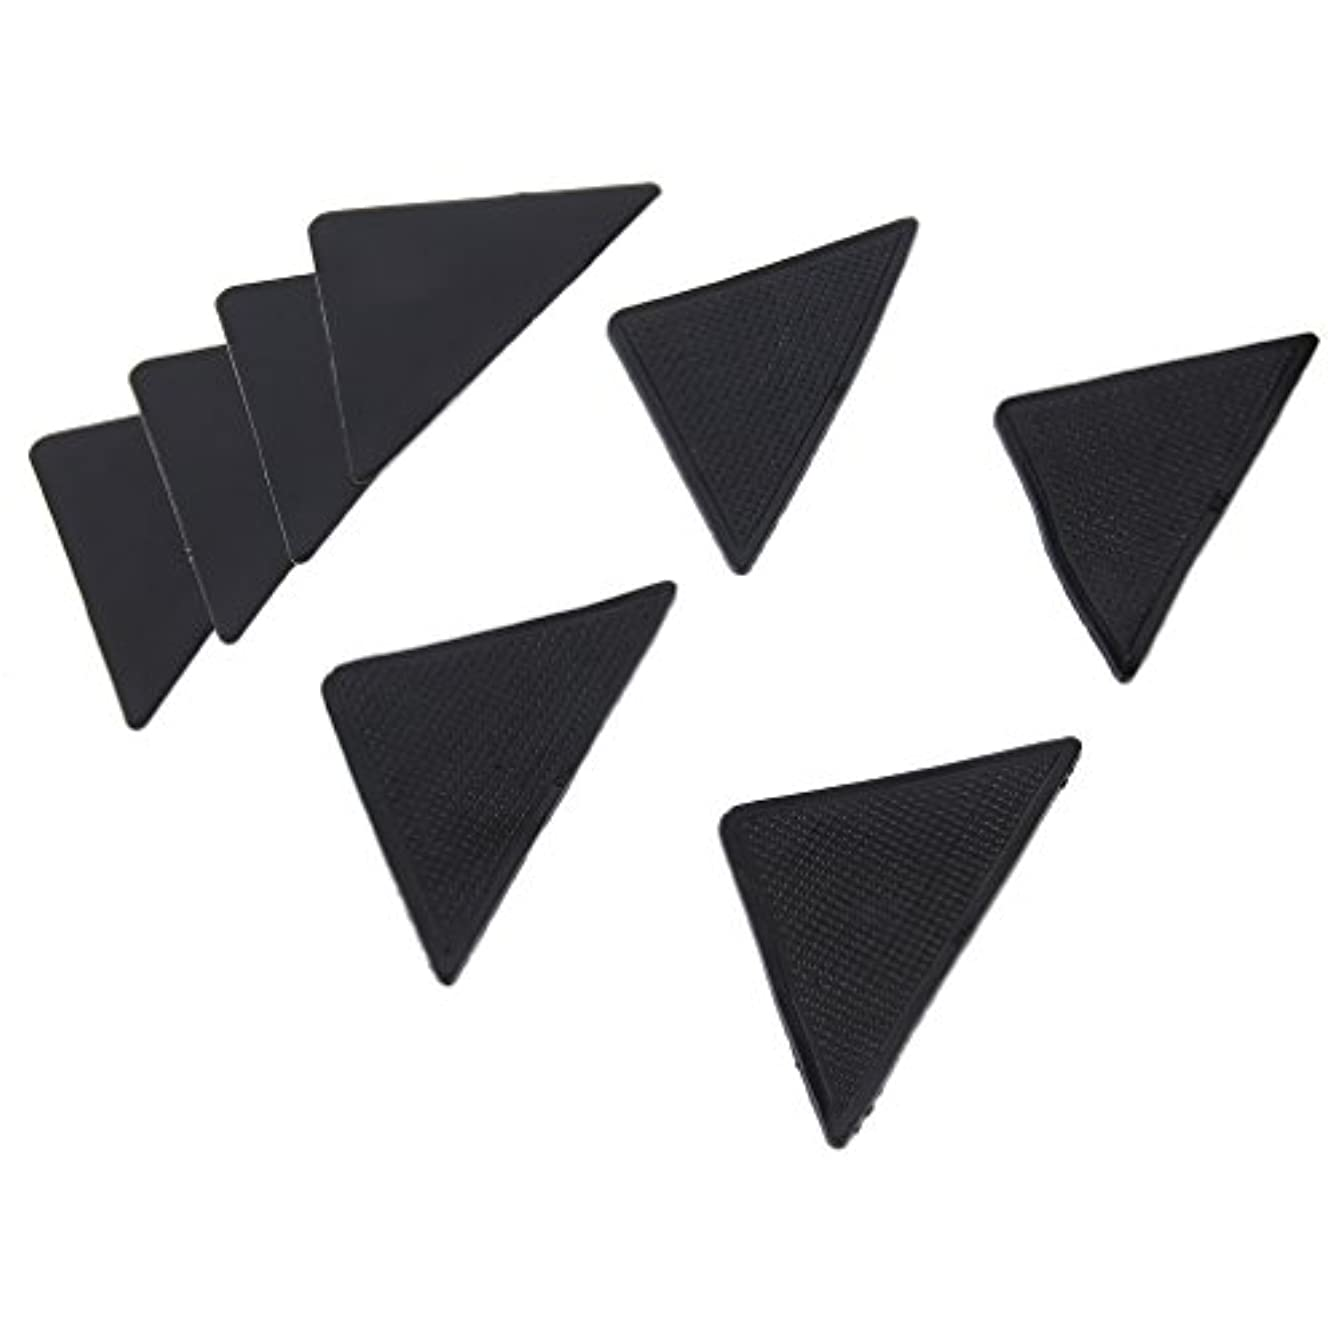 遺伝的お父さん違反する4 pcs Rug Carpet Mat Grippers Non Slip Anti Skid Reusable Silicone Grip Pads